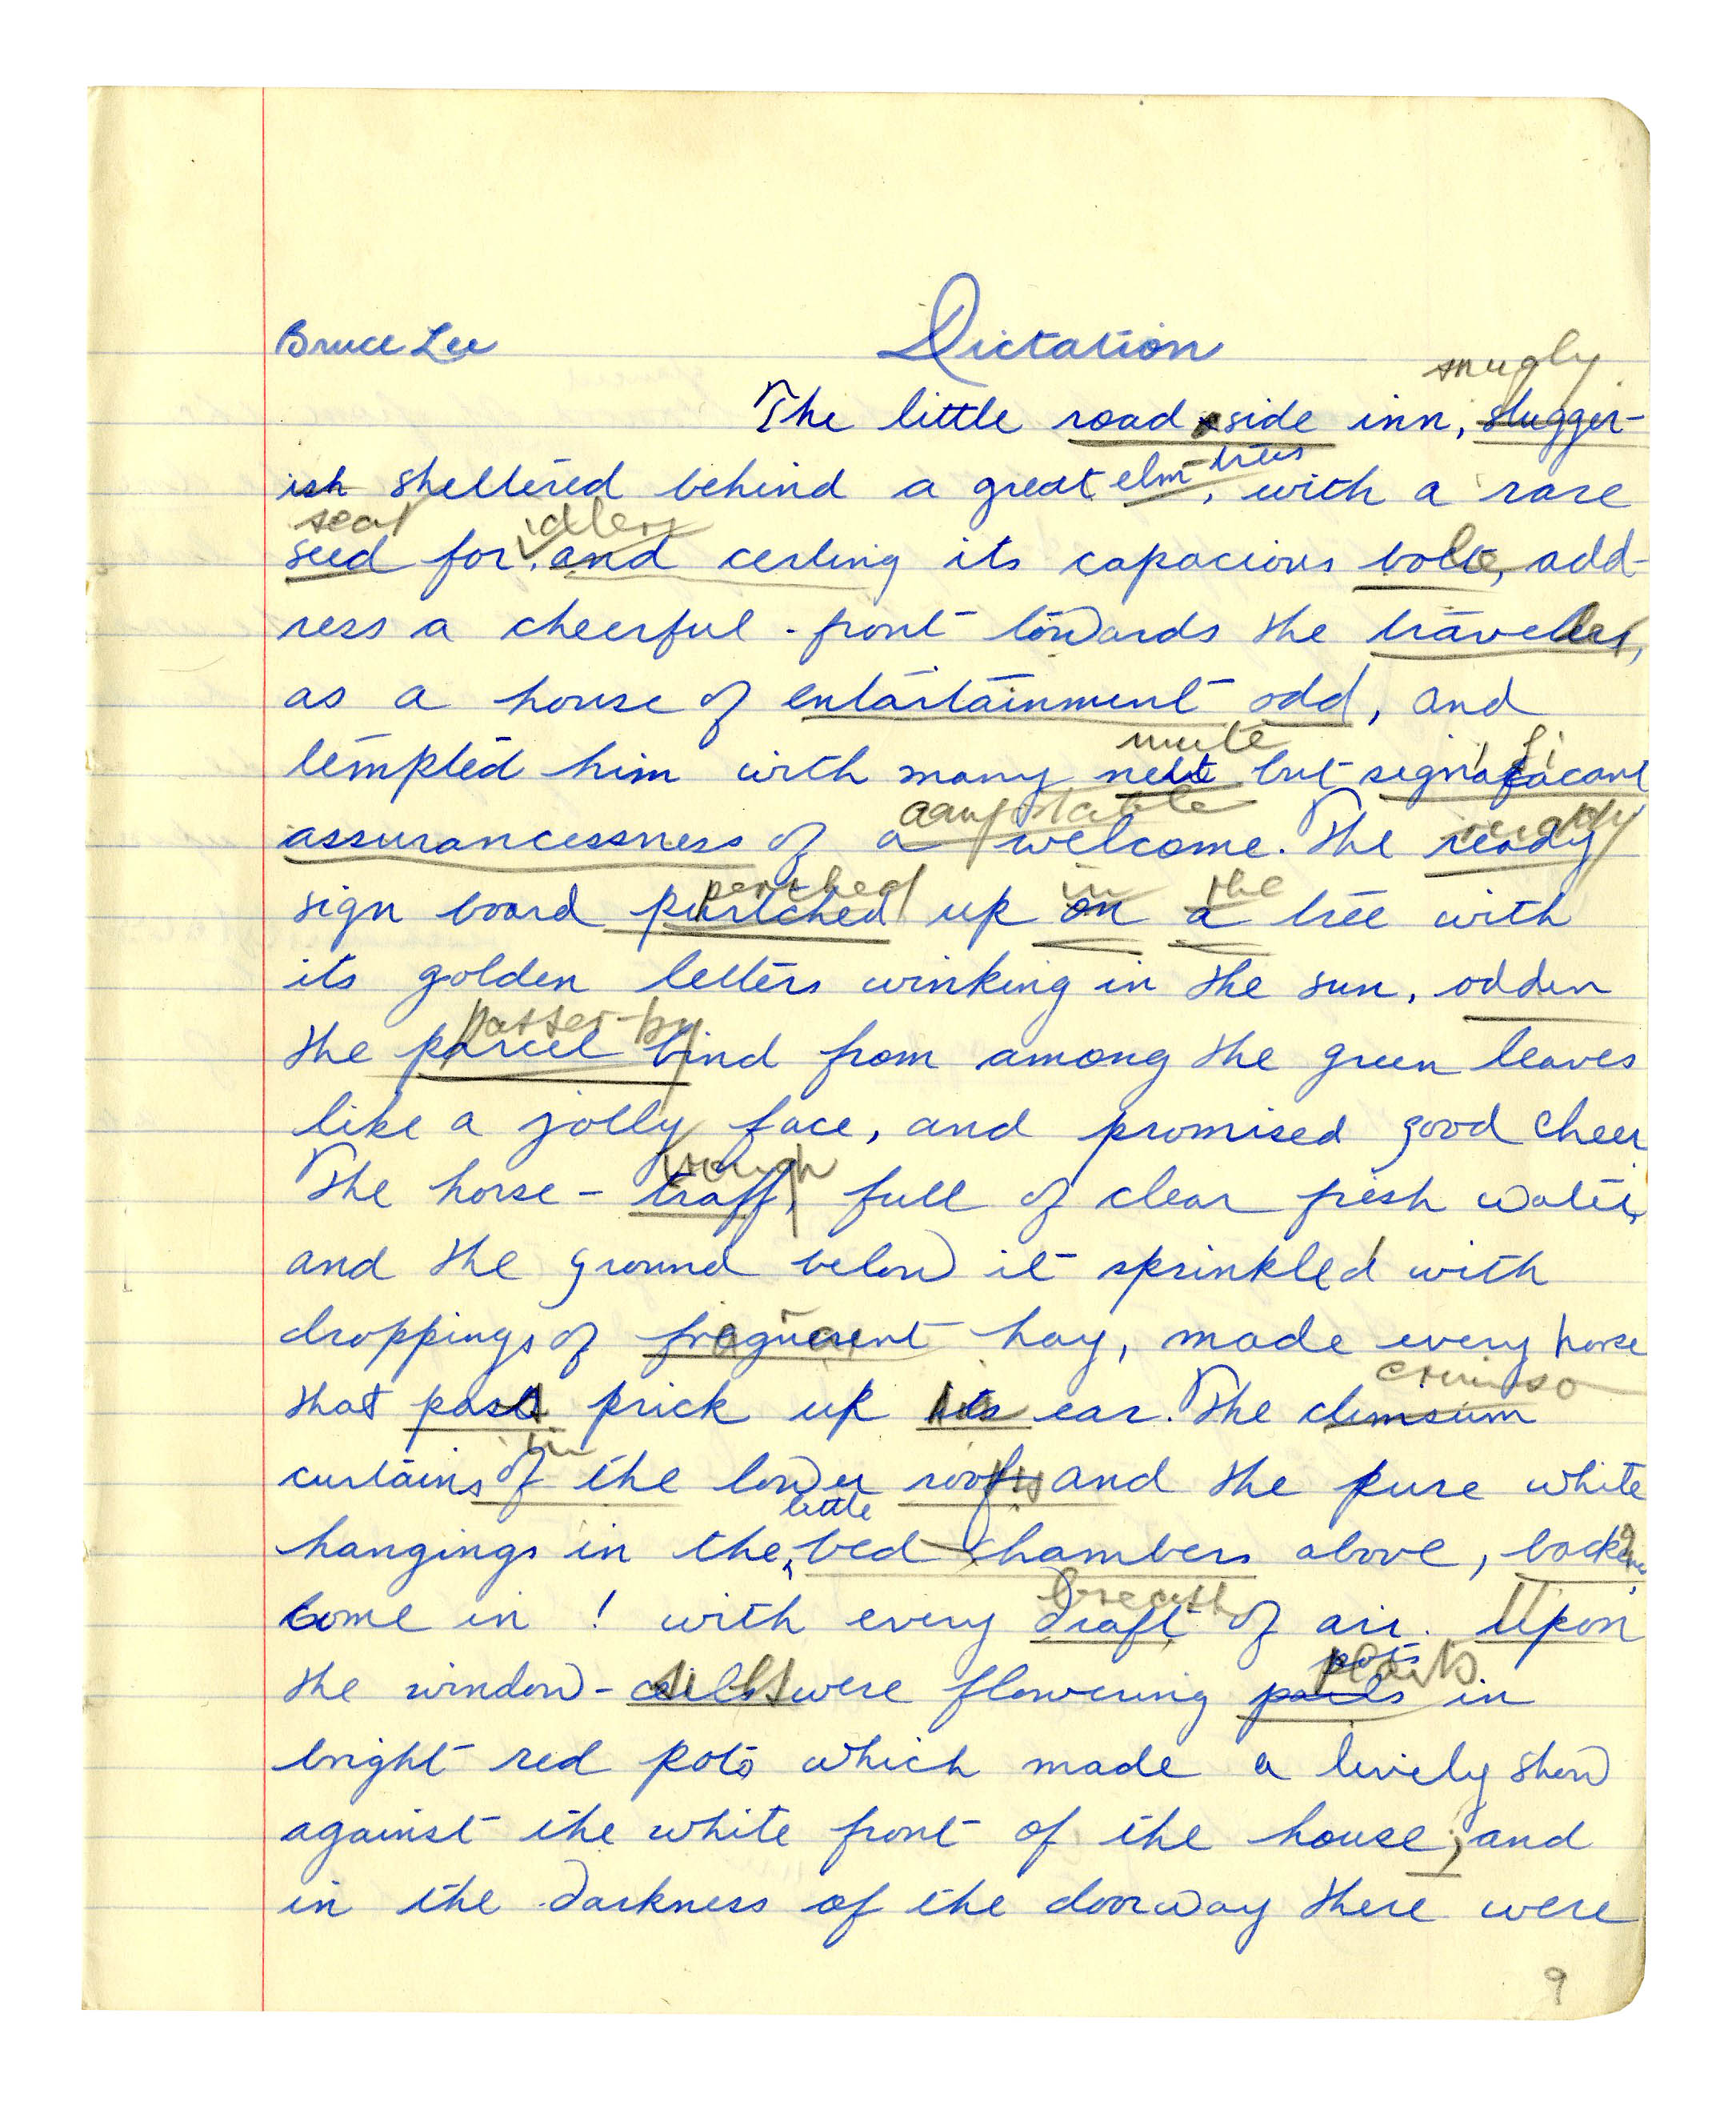 003 Essay On Handwriting Bruce Lee Signed 52850b Lg Fearsome Short Importance Of Good In Hindi Gujarati Full